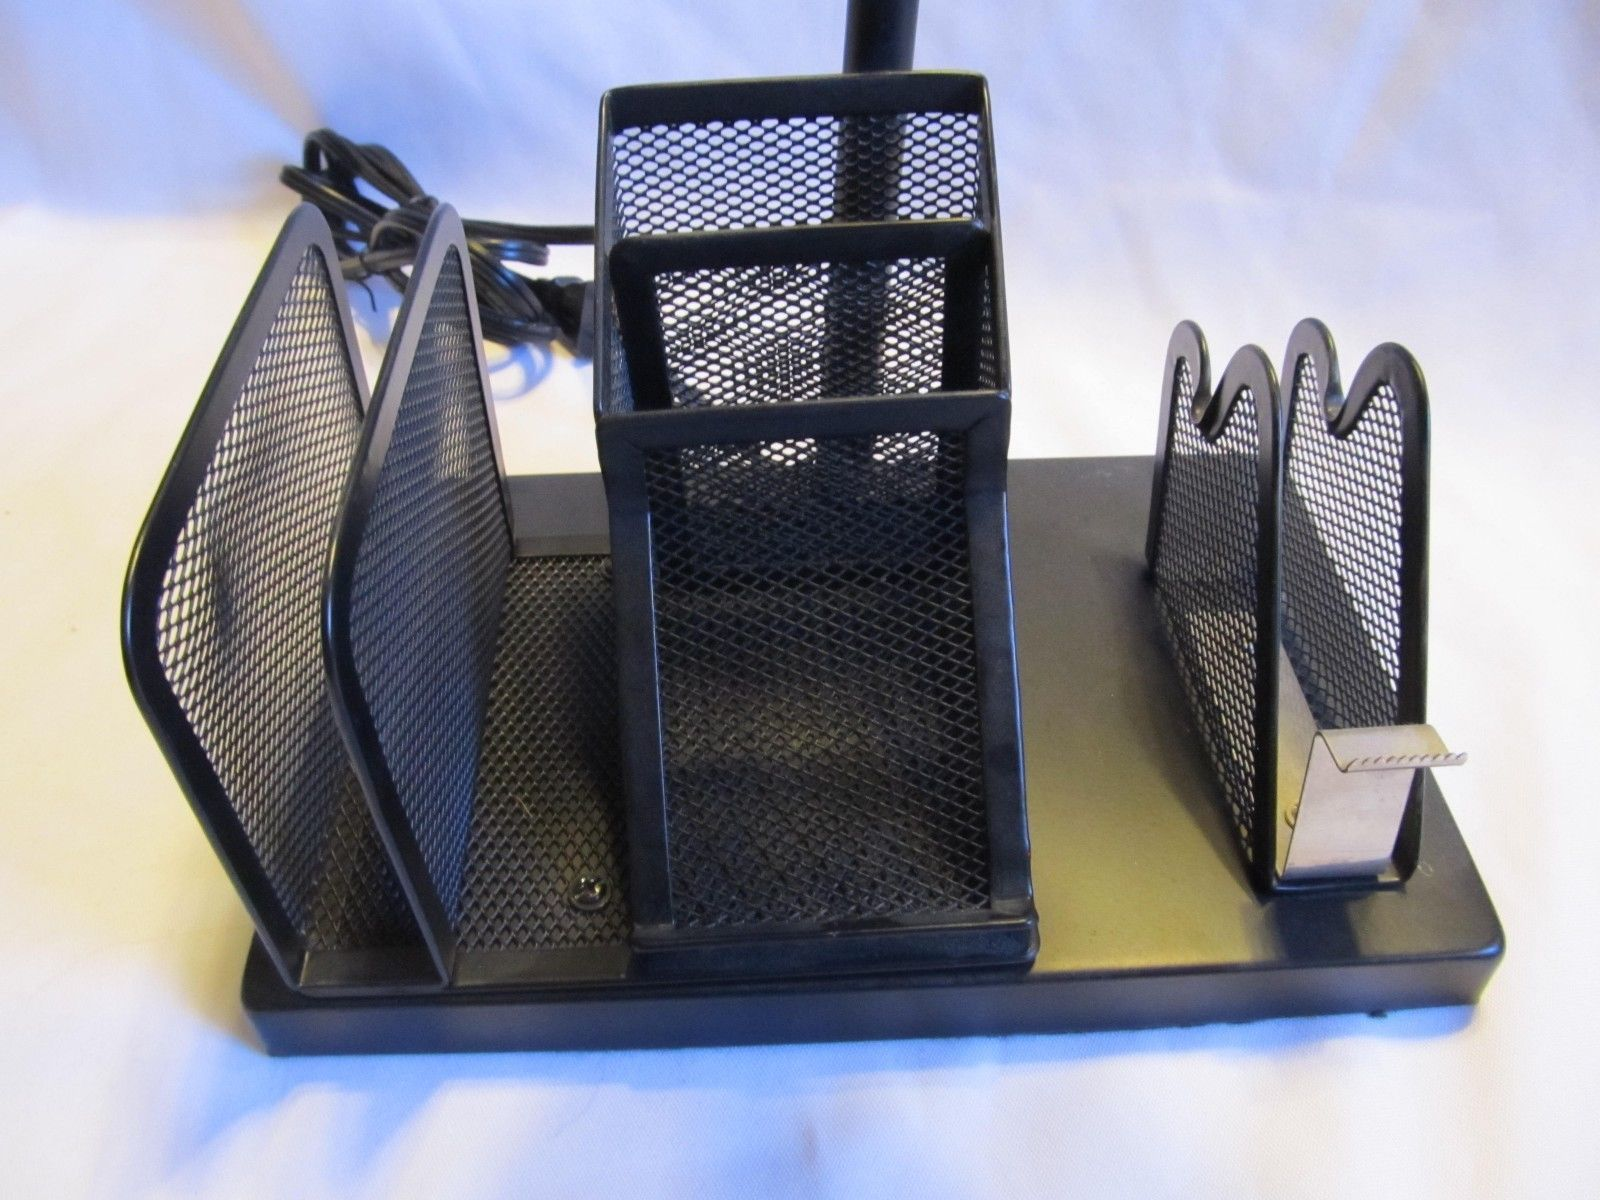 Desk Caddy Office Organizer Mesh Storage Tray Pencil Pen Holder Metal Light Lamp